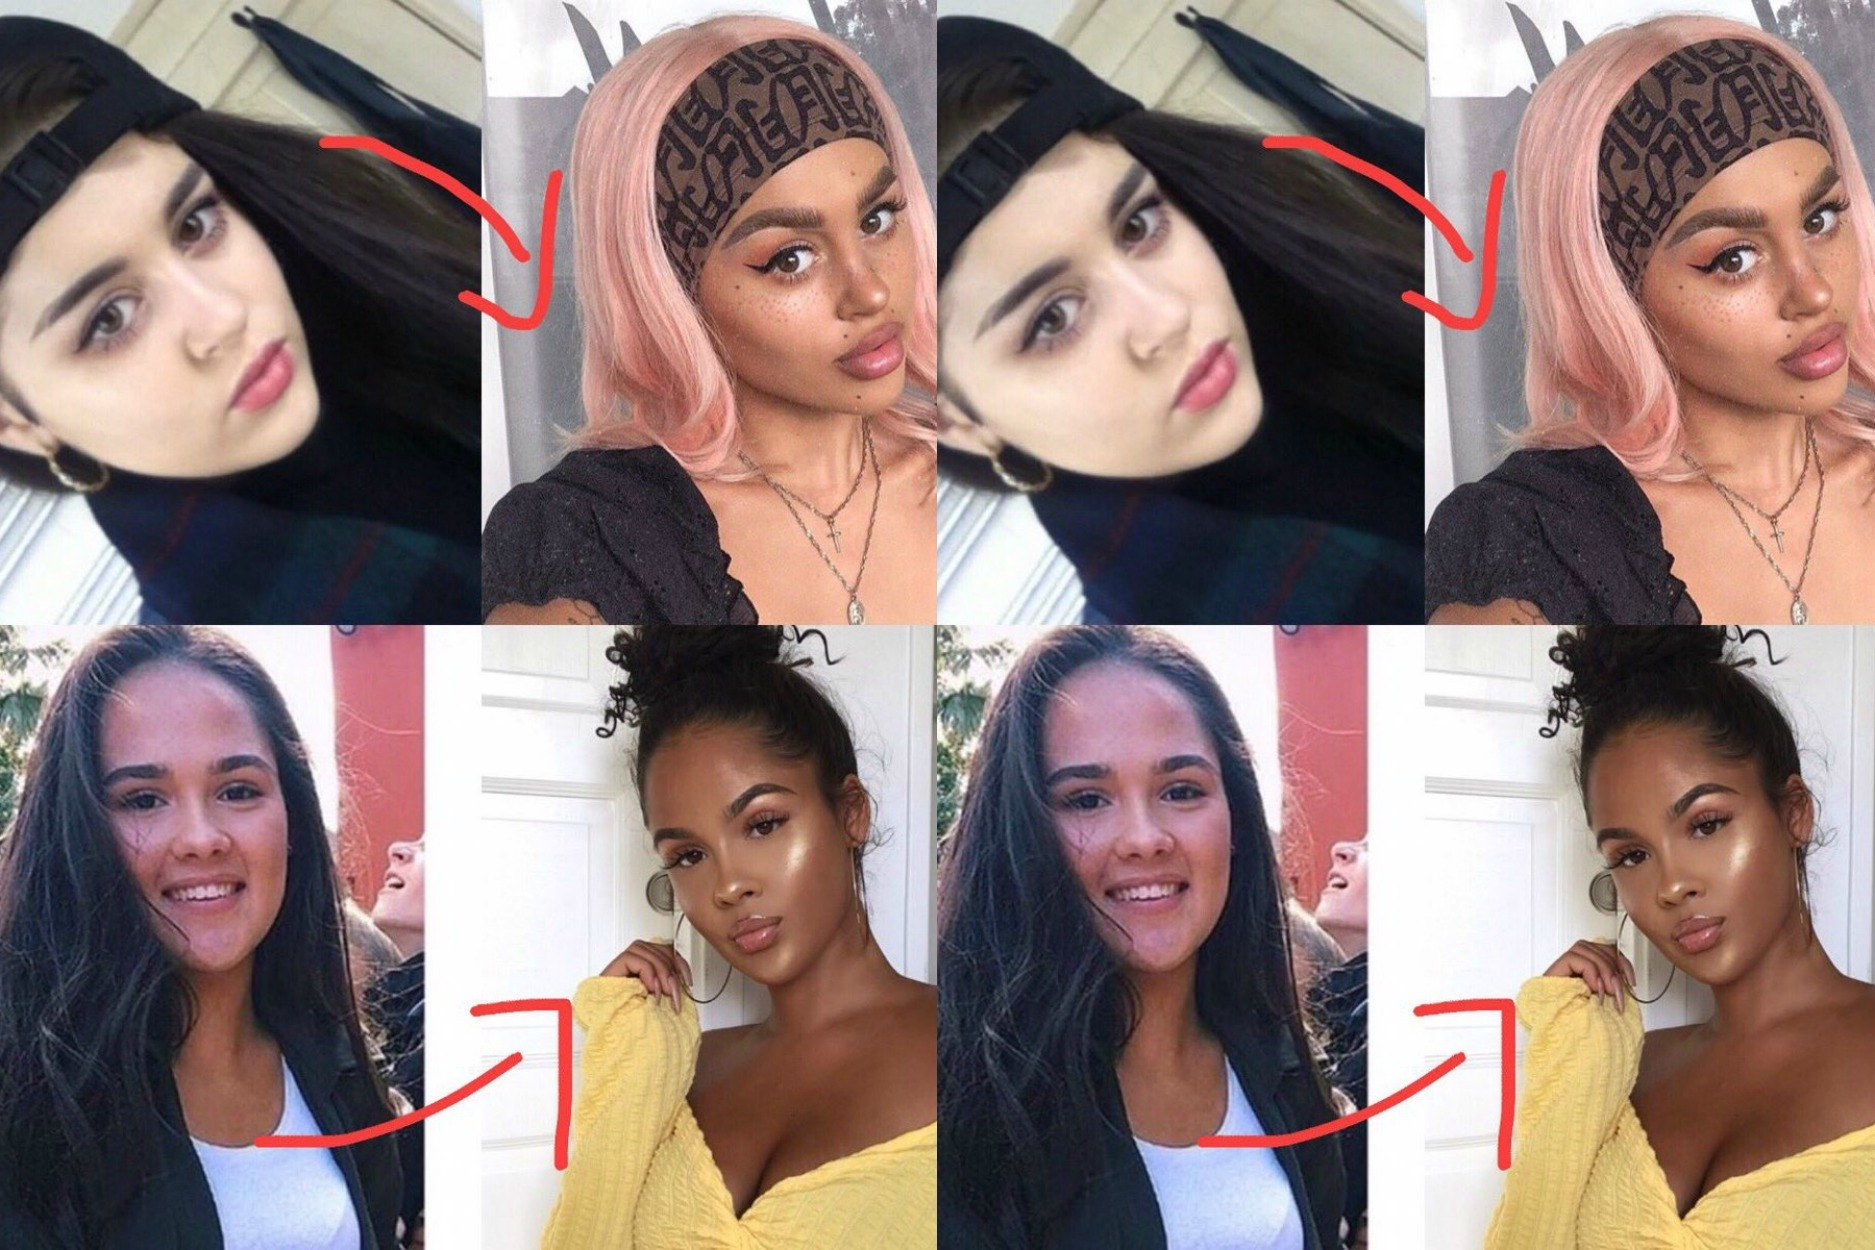 """Some White Influencers Are Being Accused of """"Blackfishing,"""" or Using Makeup to Appear Black"""